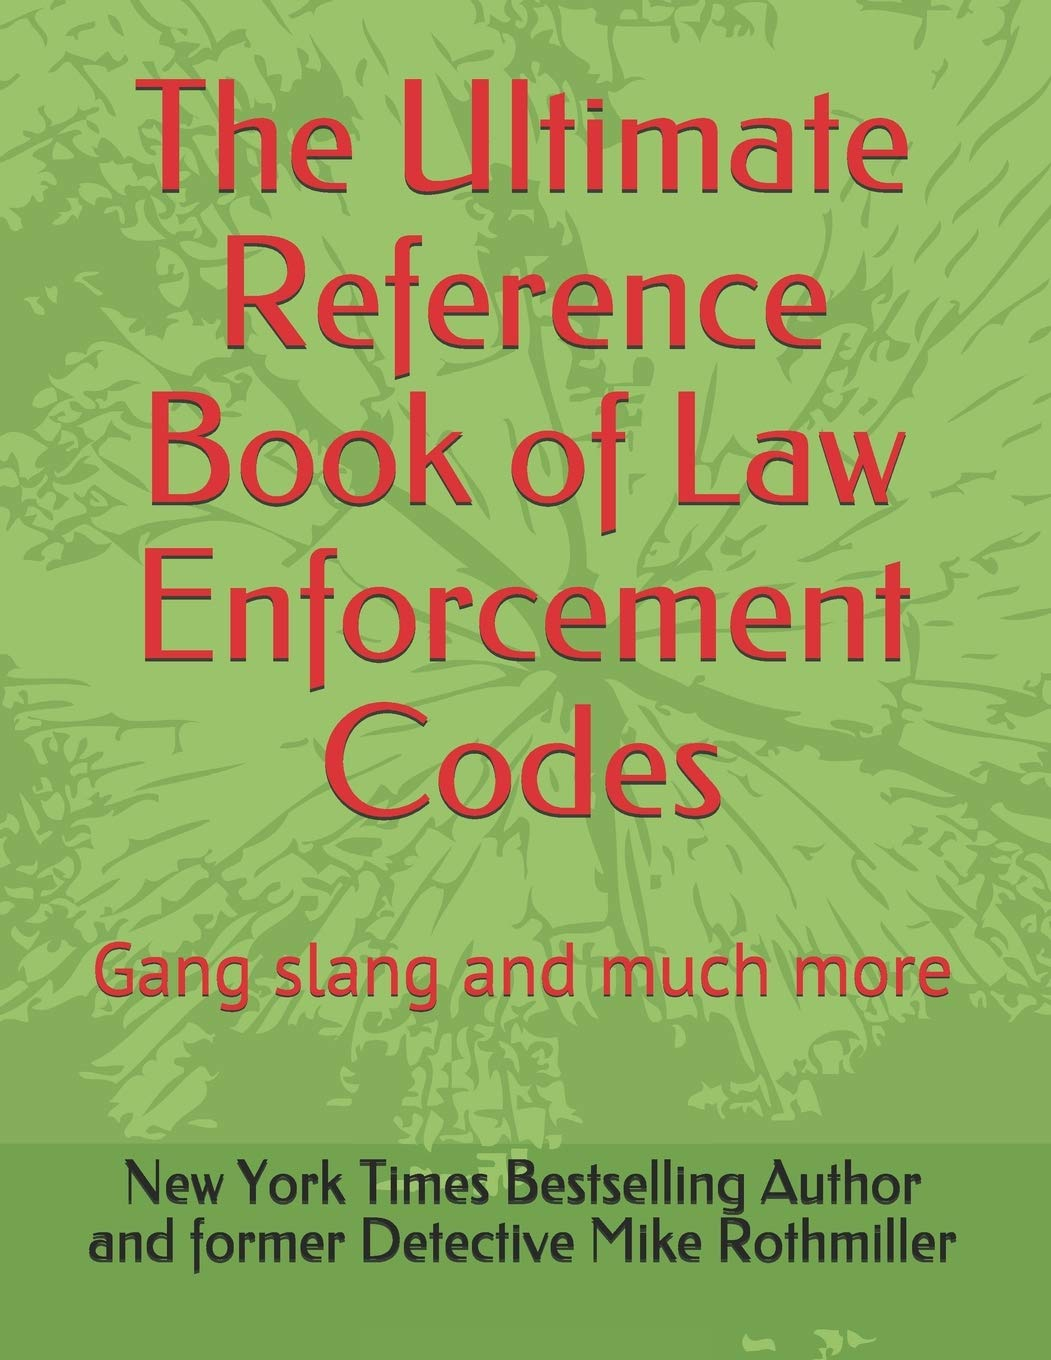 The ultimate reference book of law...